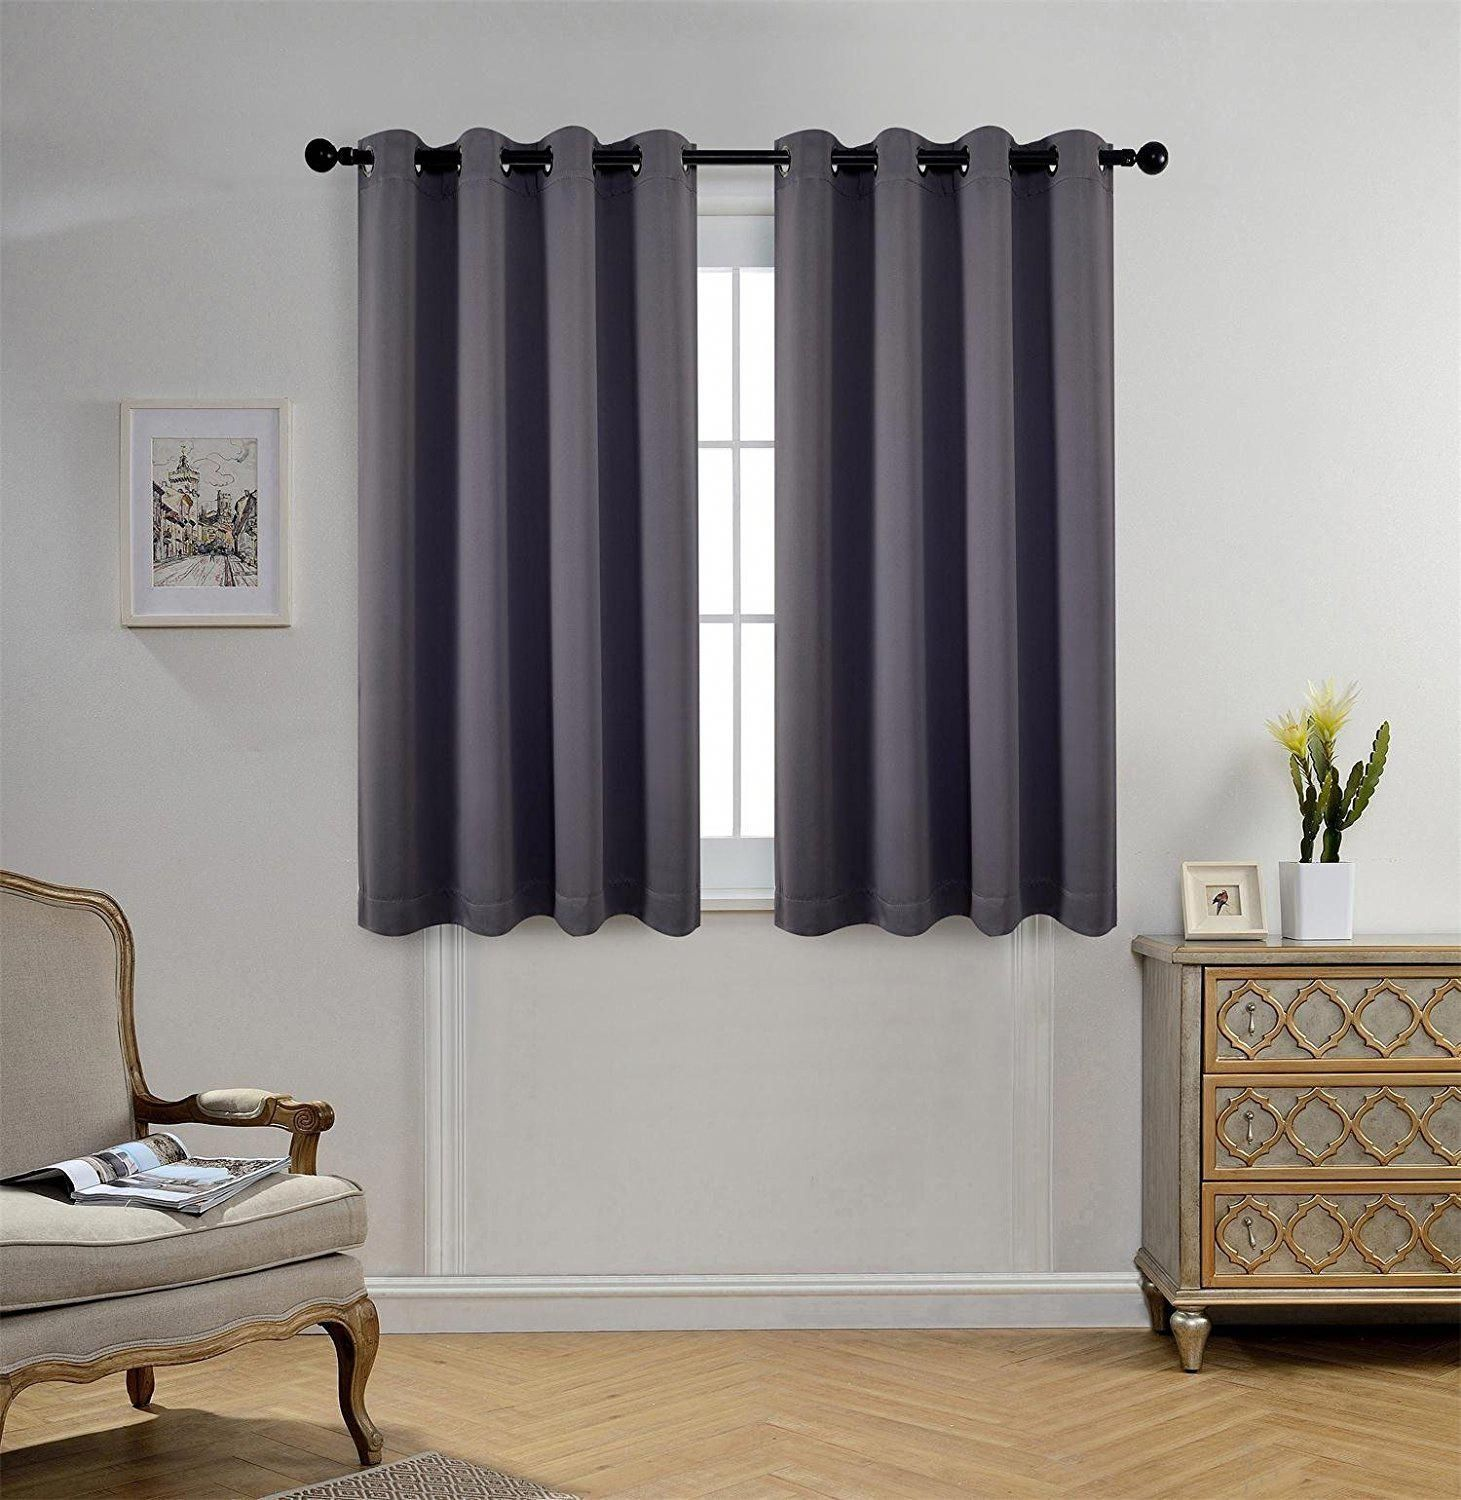 Room Darkening Thermal Insulated Blackout Grommet Window Curtains For Livin Curtains Living Room Living Room Decor Curtains Thermal Insulated Blackout Curtains